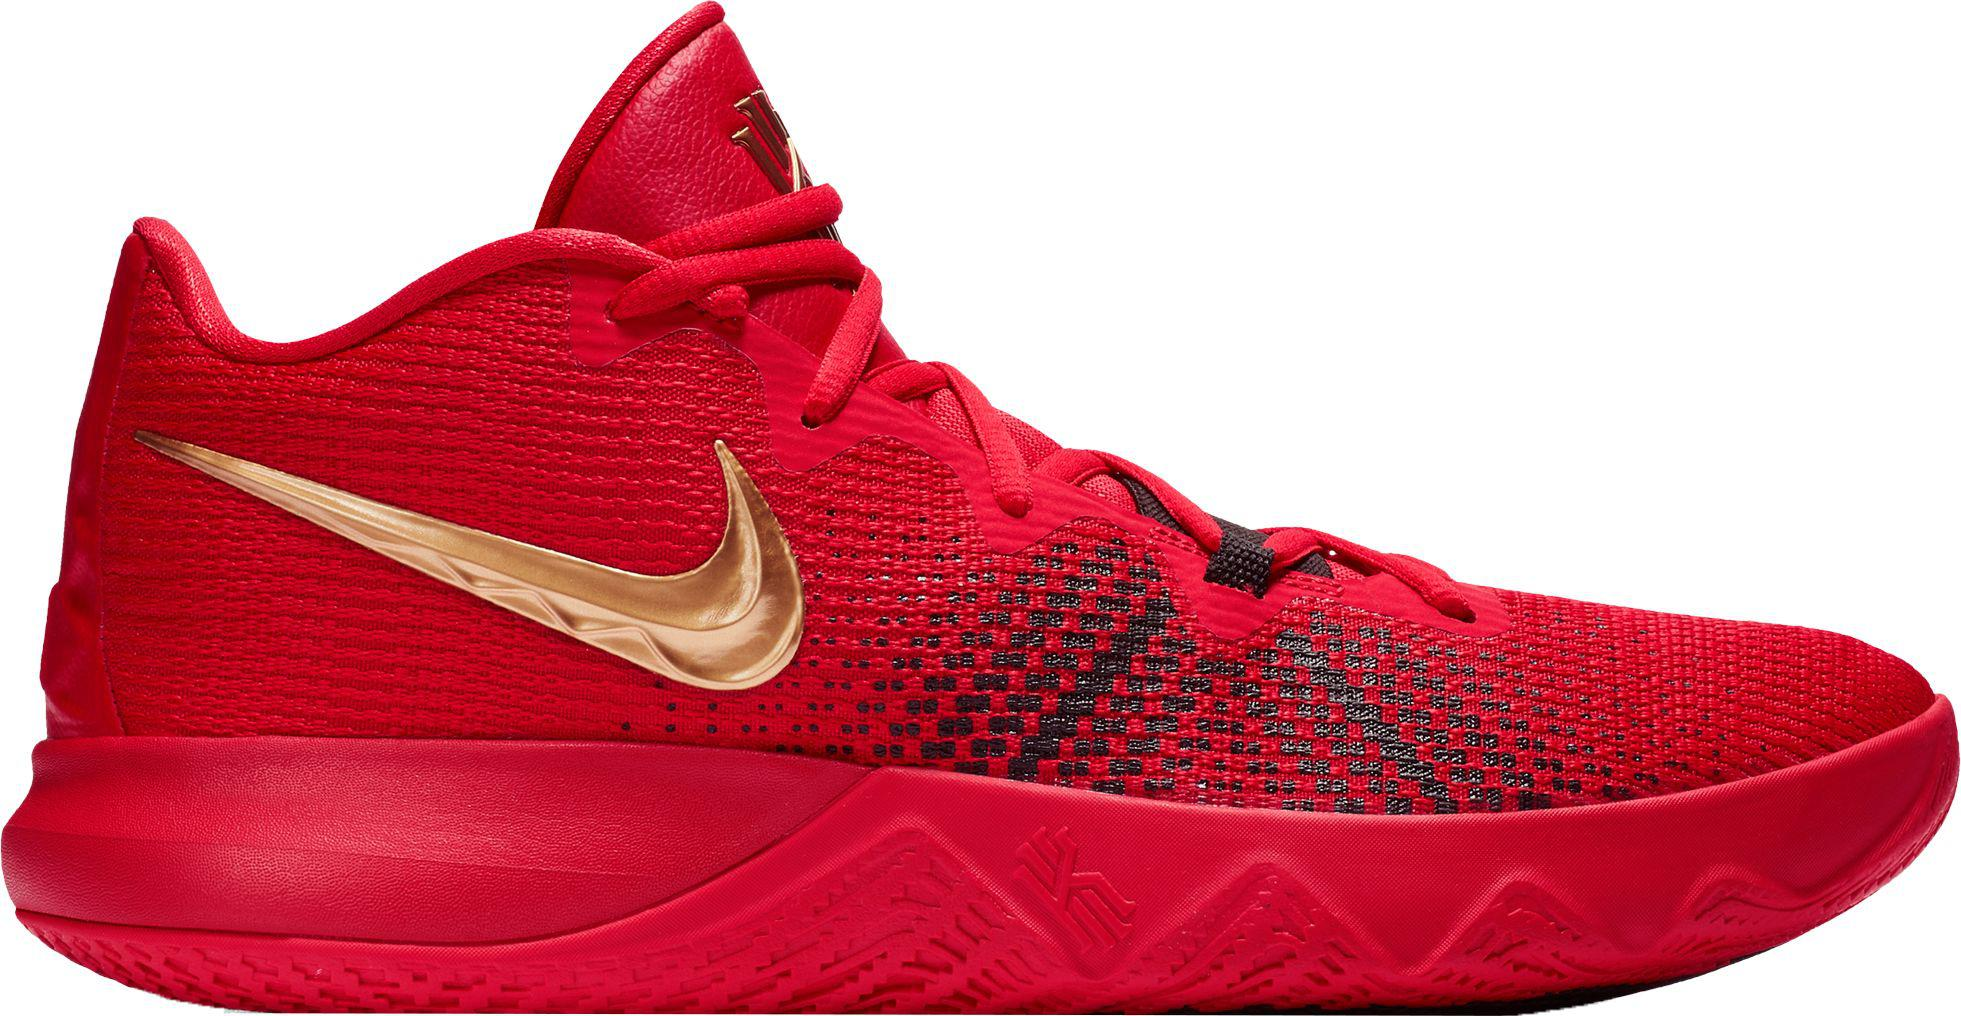 8fccc381ae9 Nike Kyrie Flytrap Basketball Shoes in Red for Men - Lyst